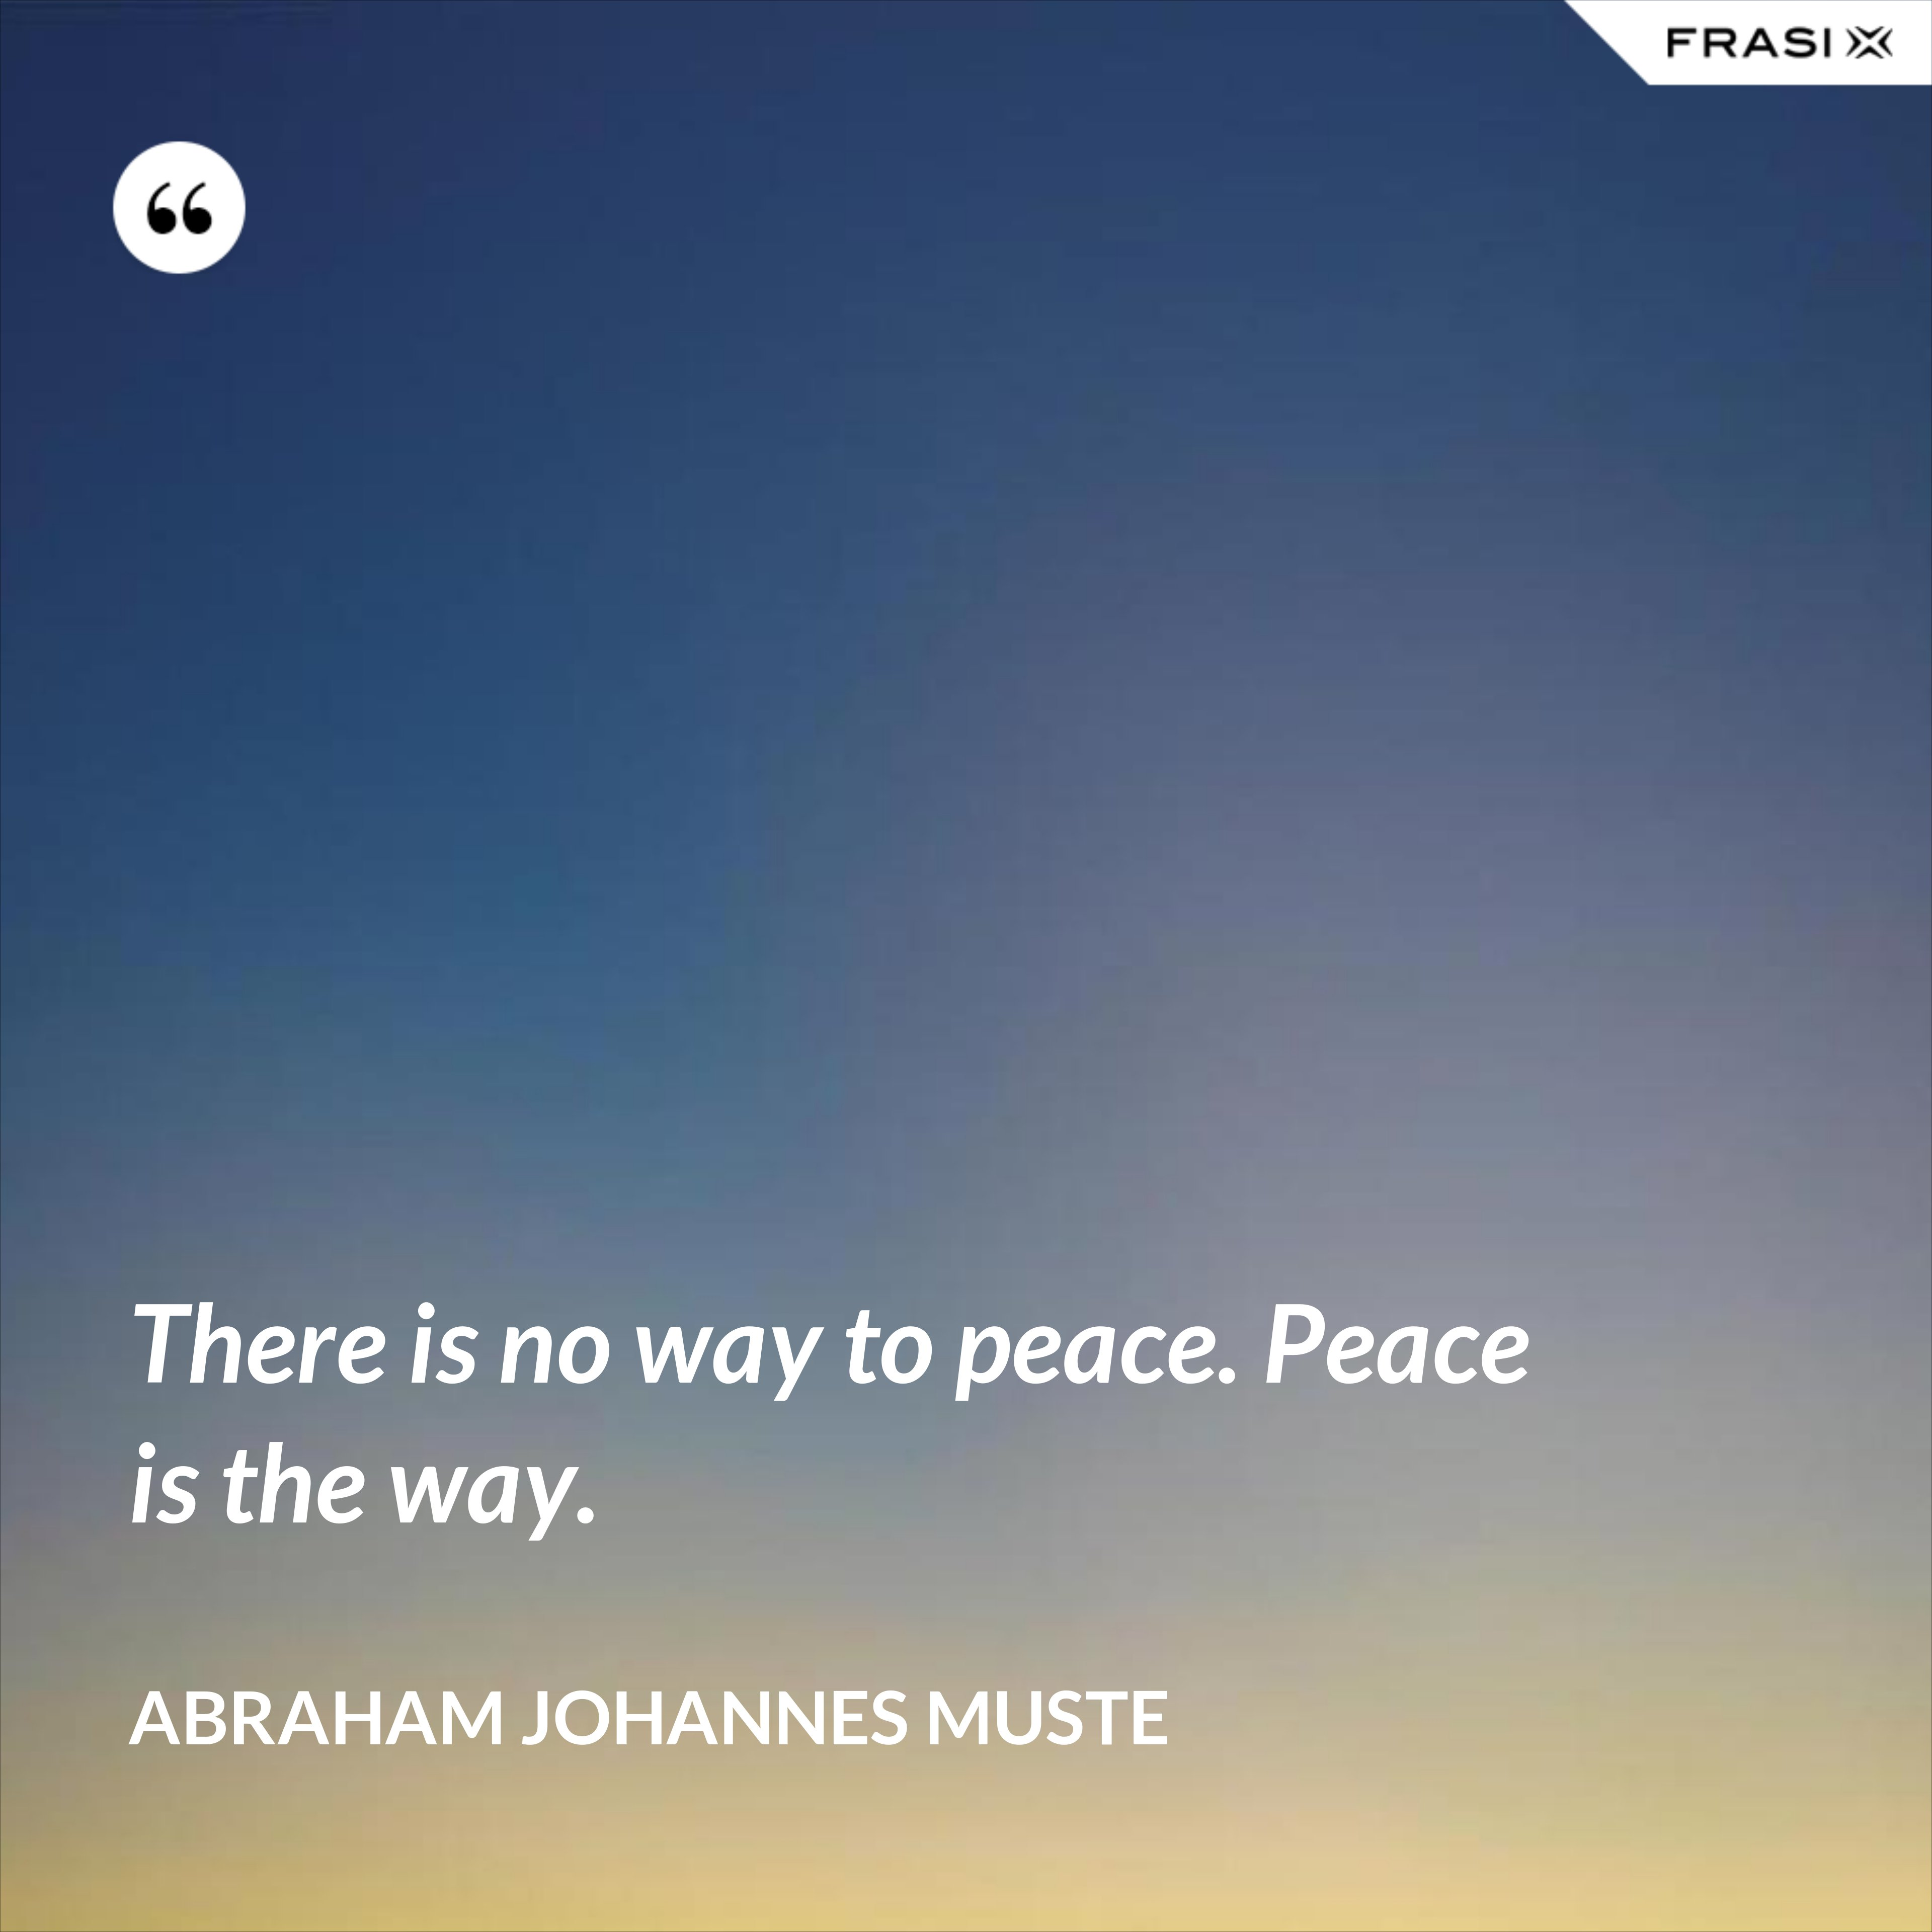 There is no way to peace. Peace is the way. - Abraham Johannes Muste